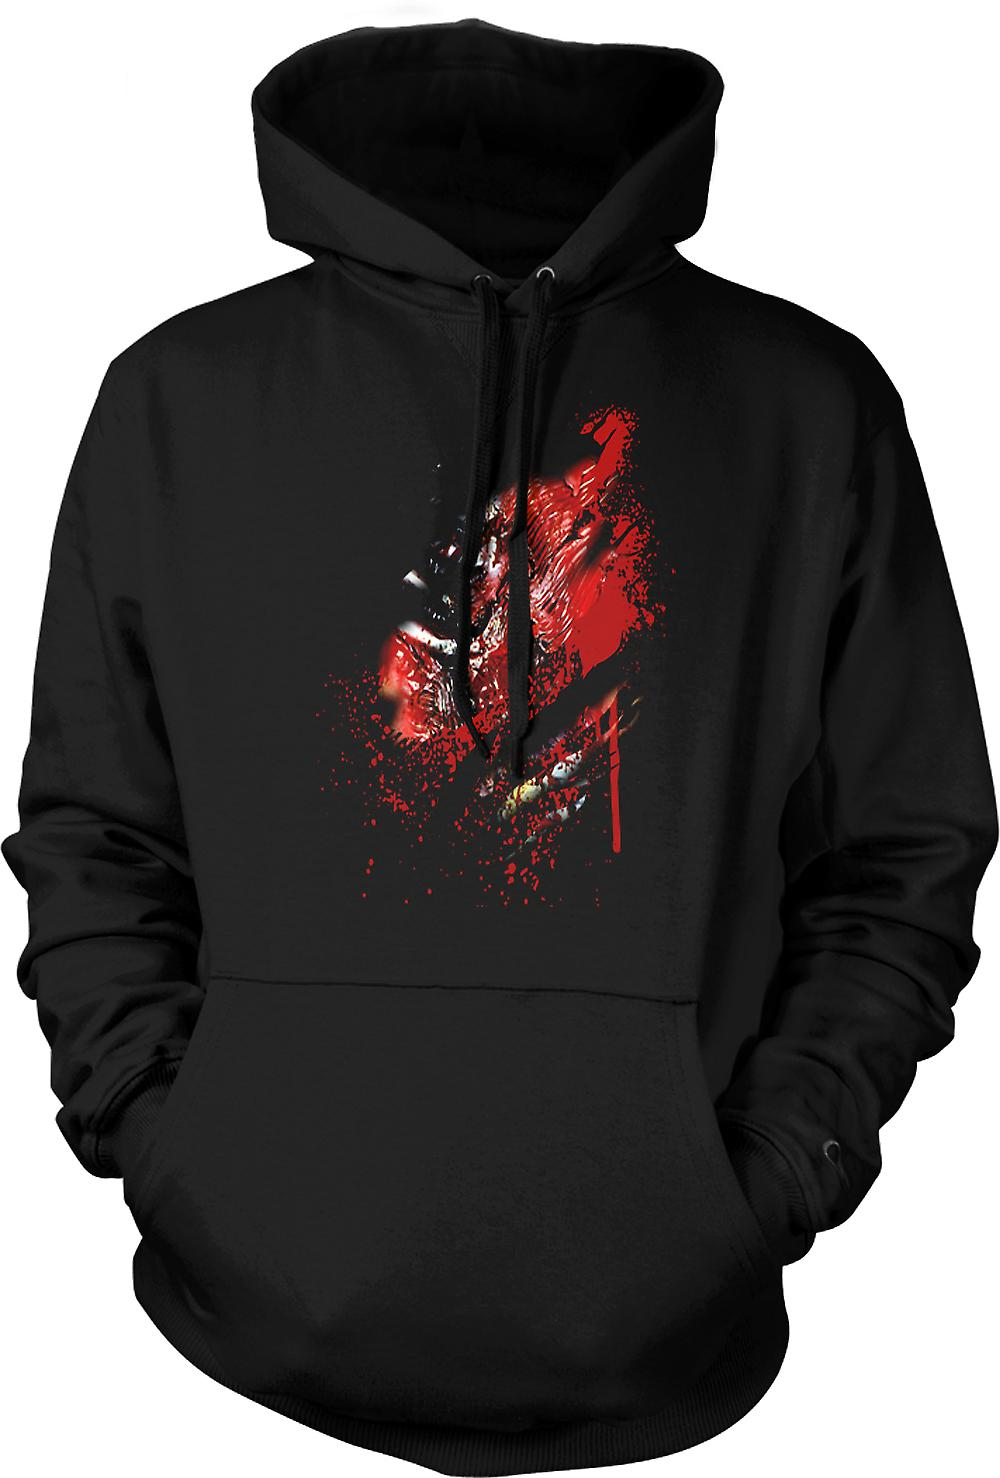 Mens Hoodie - Zombie Walking Dead Ribs And Heart Ripped Design